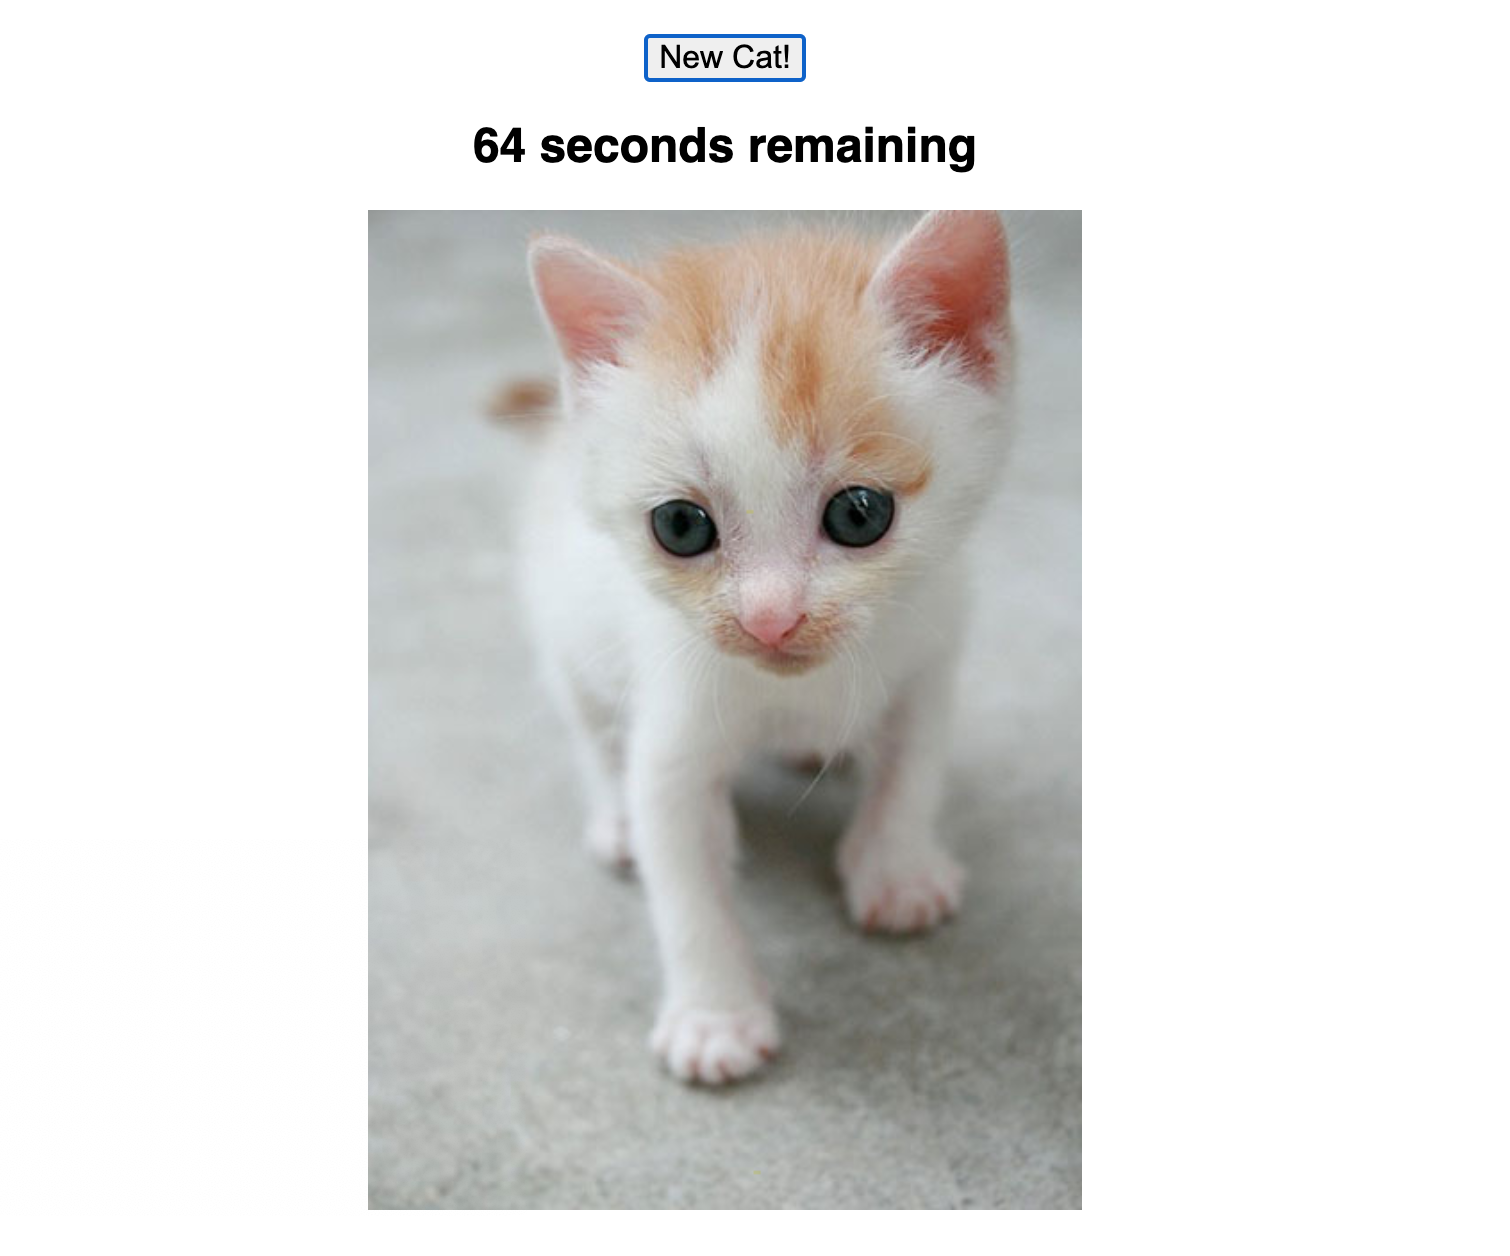 A screenshot of the app with a countdown and a picture of a cat.